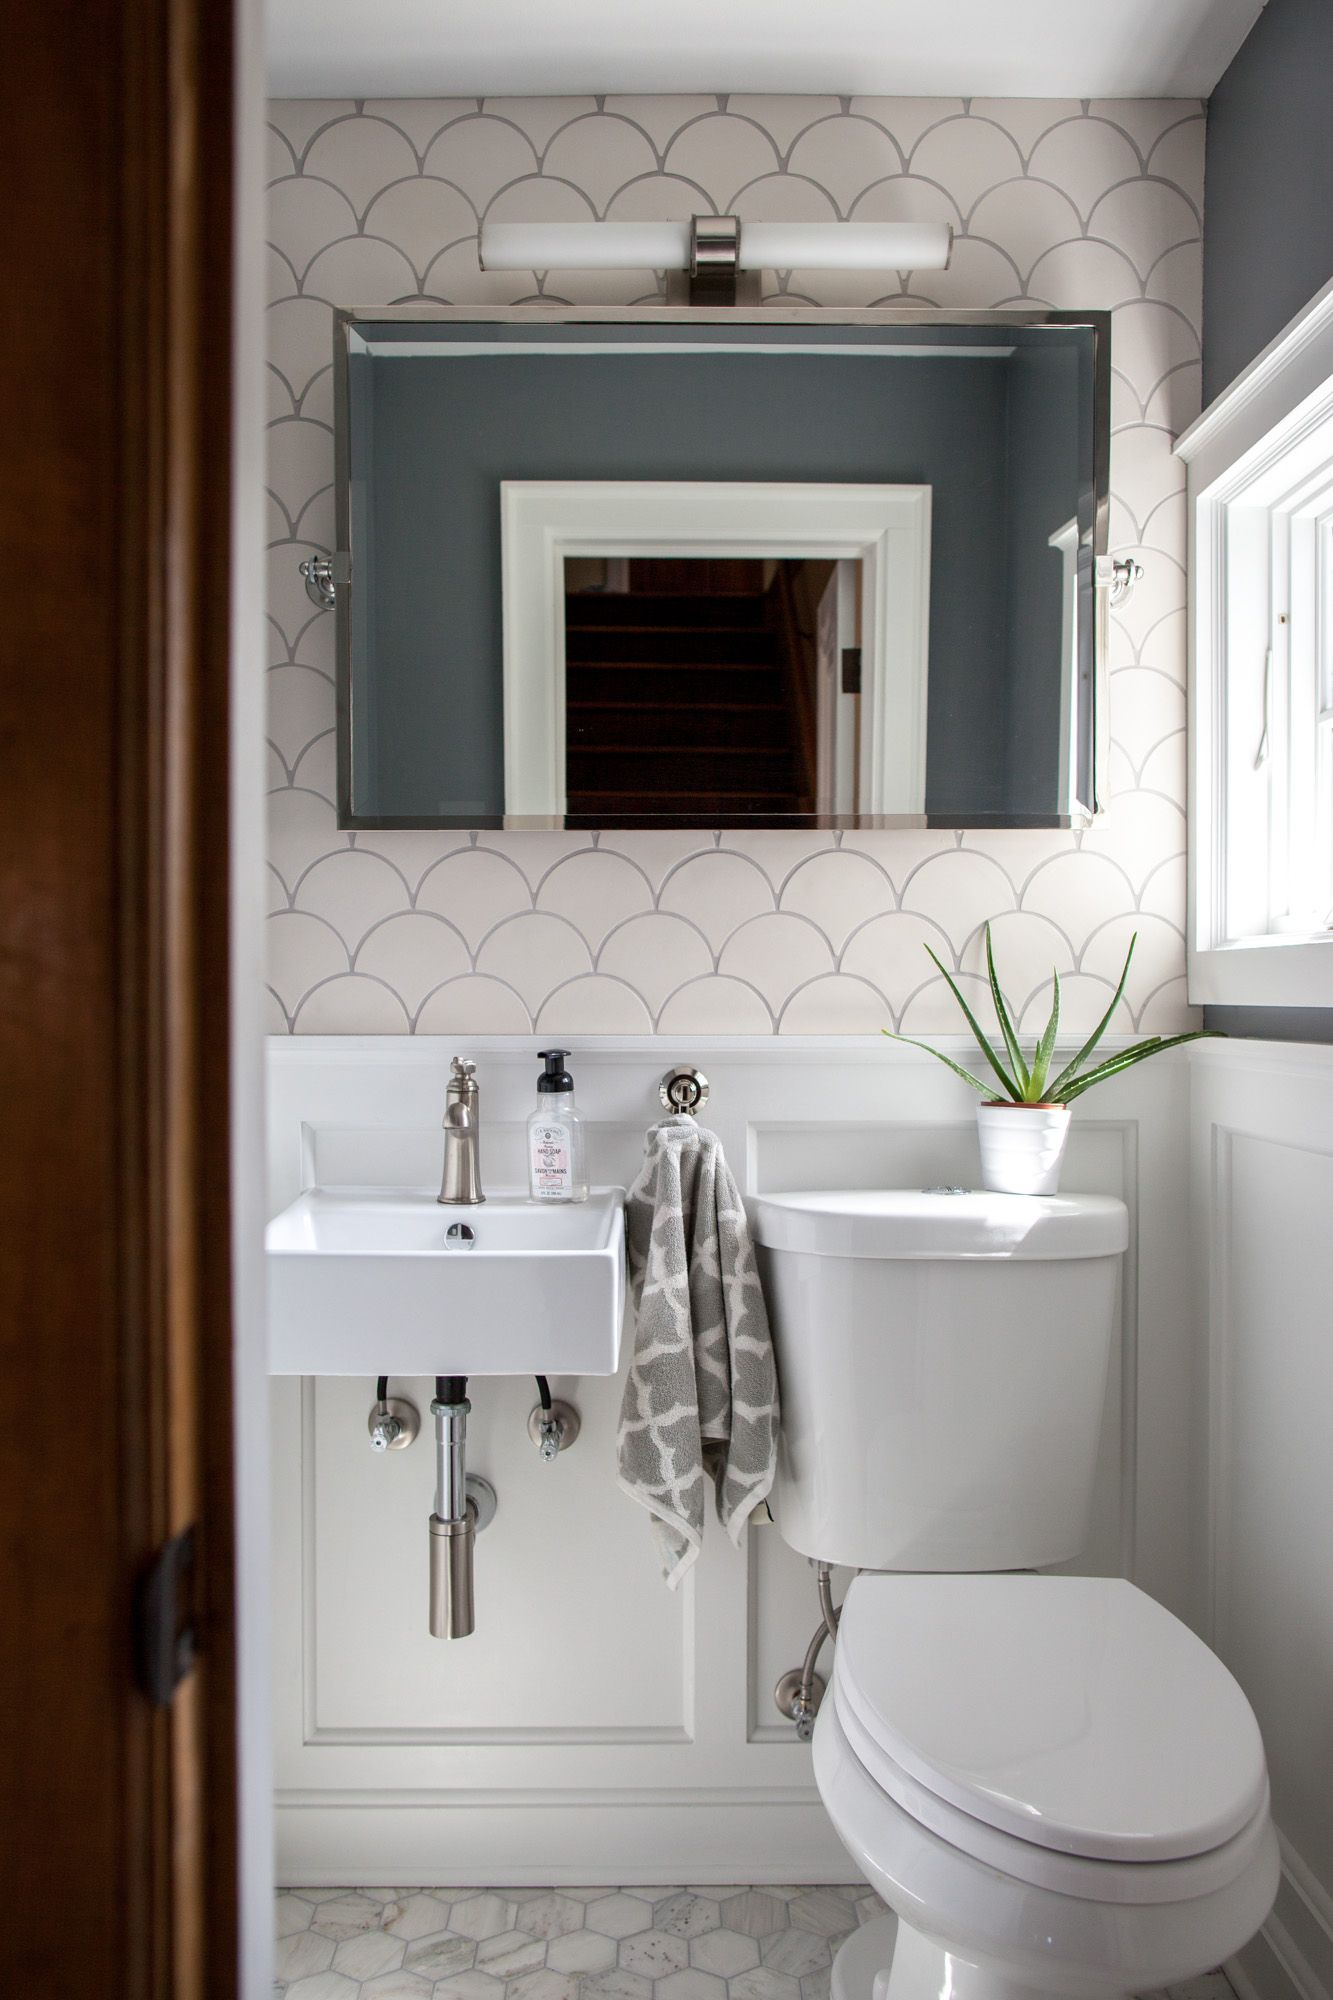 wide mirror centered over the toilet and sink instead of one narrow rh pinterest com